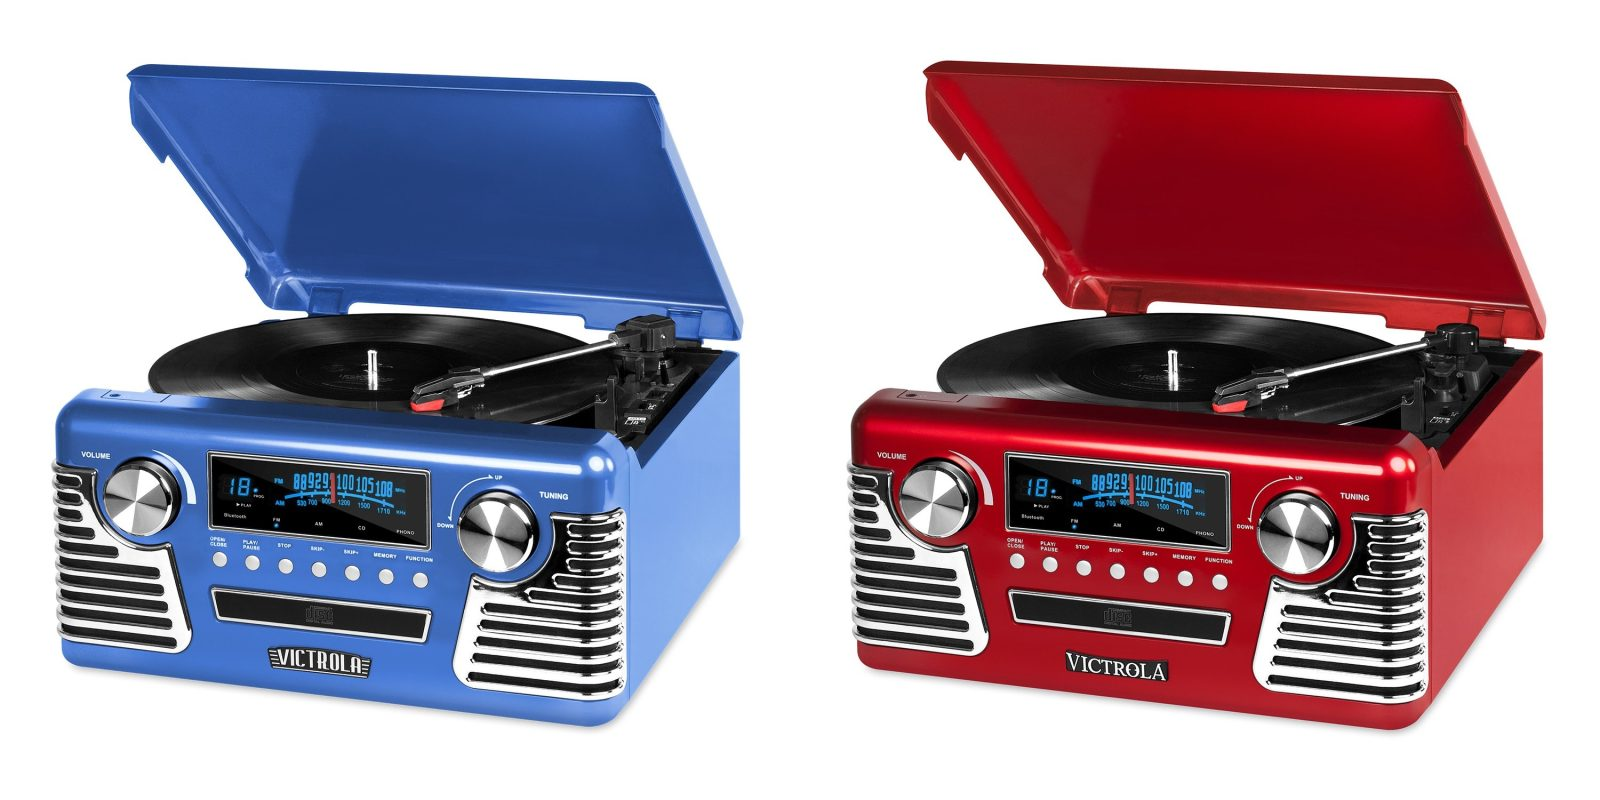 This retro-style Victrola turntable has Bluetooth for $60 (Reg. $80+)